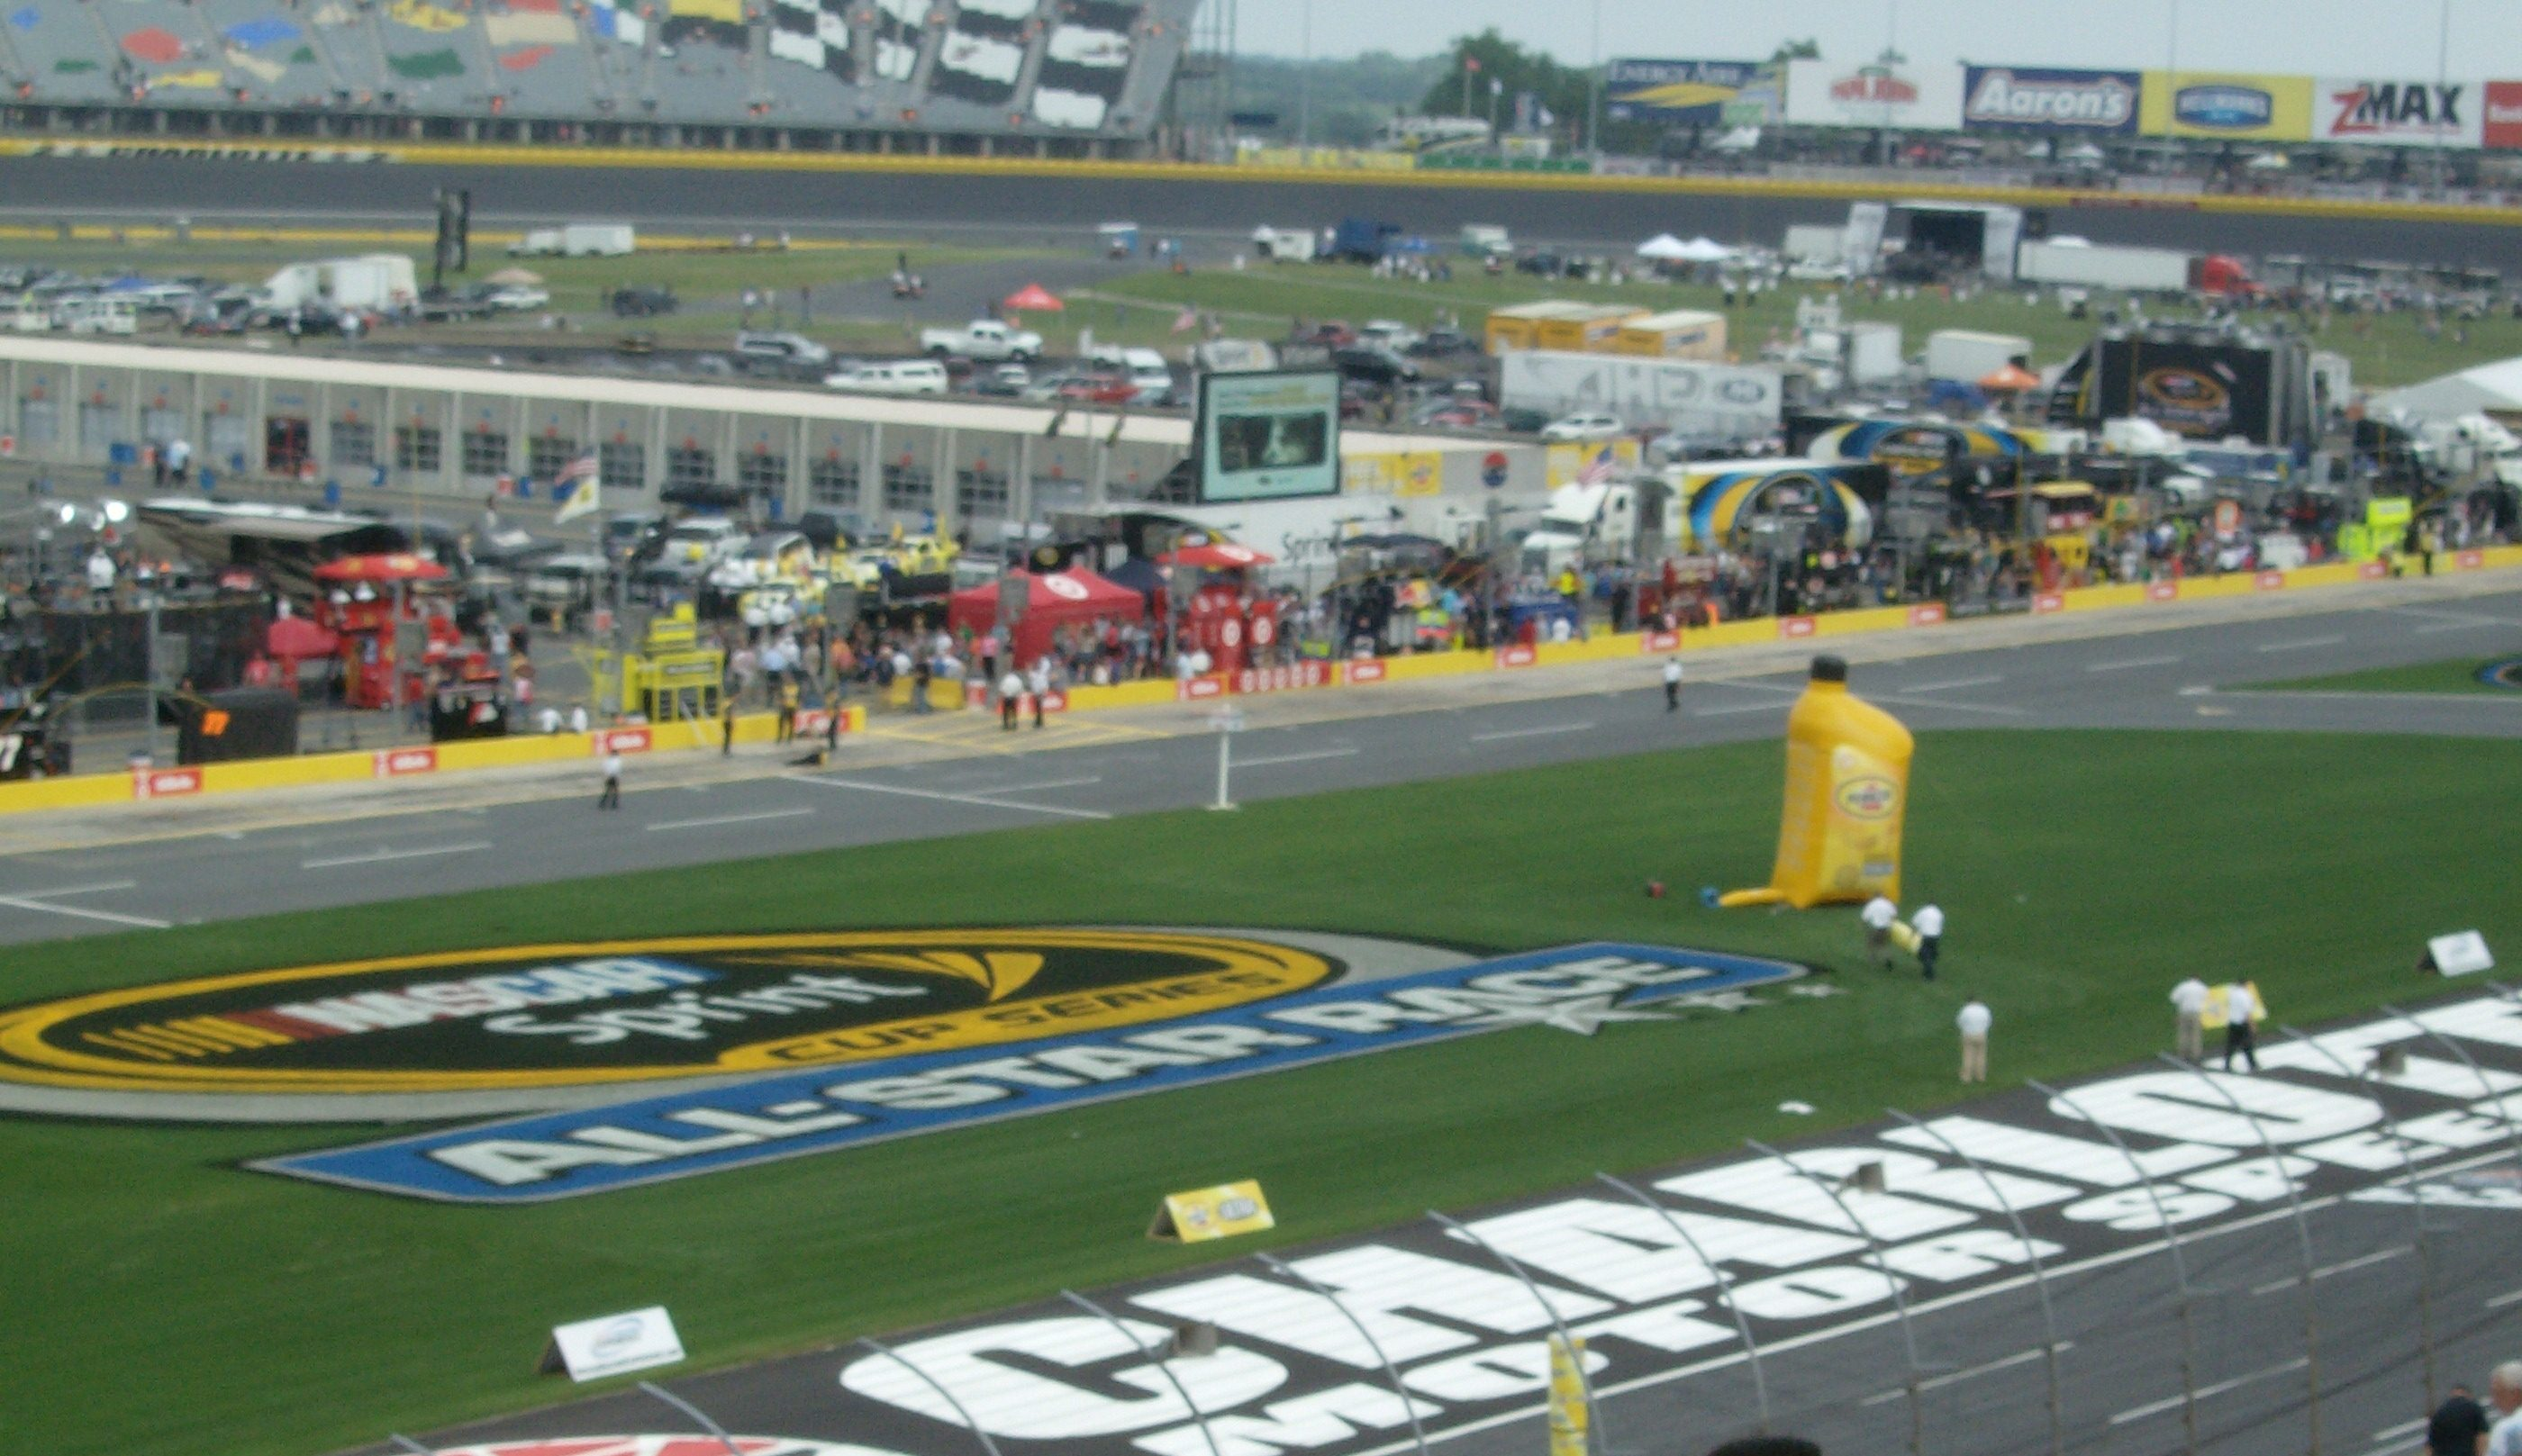 View of track and infield.